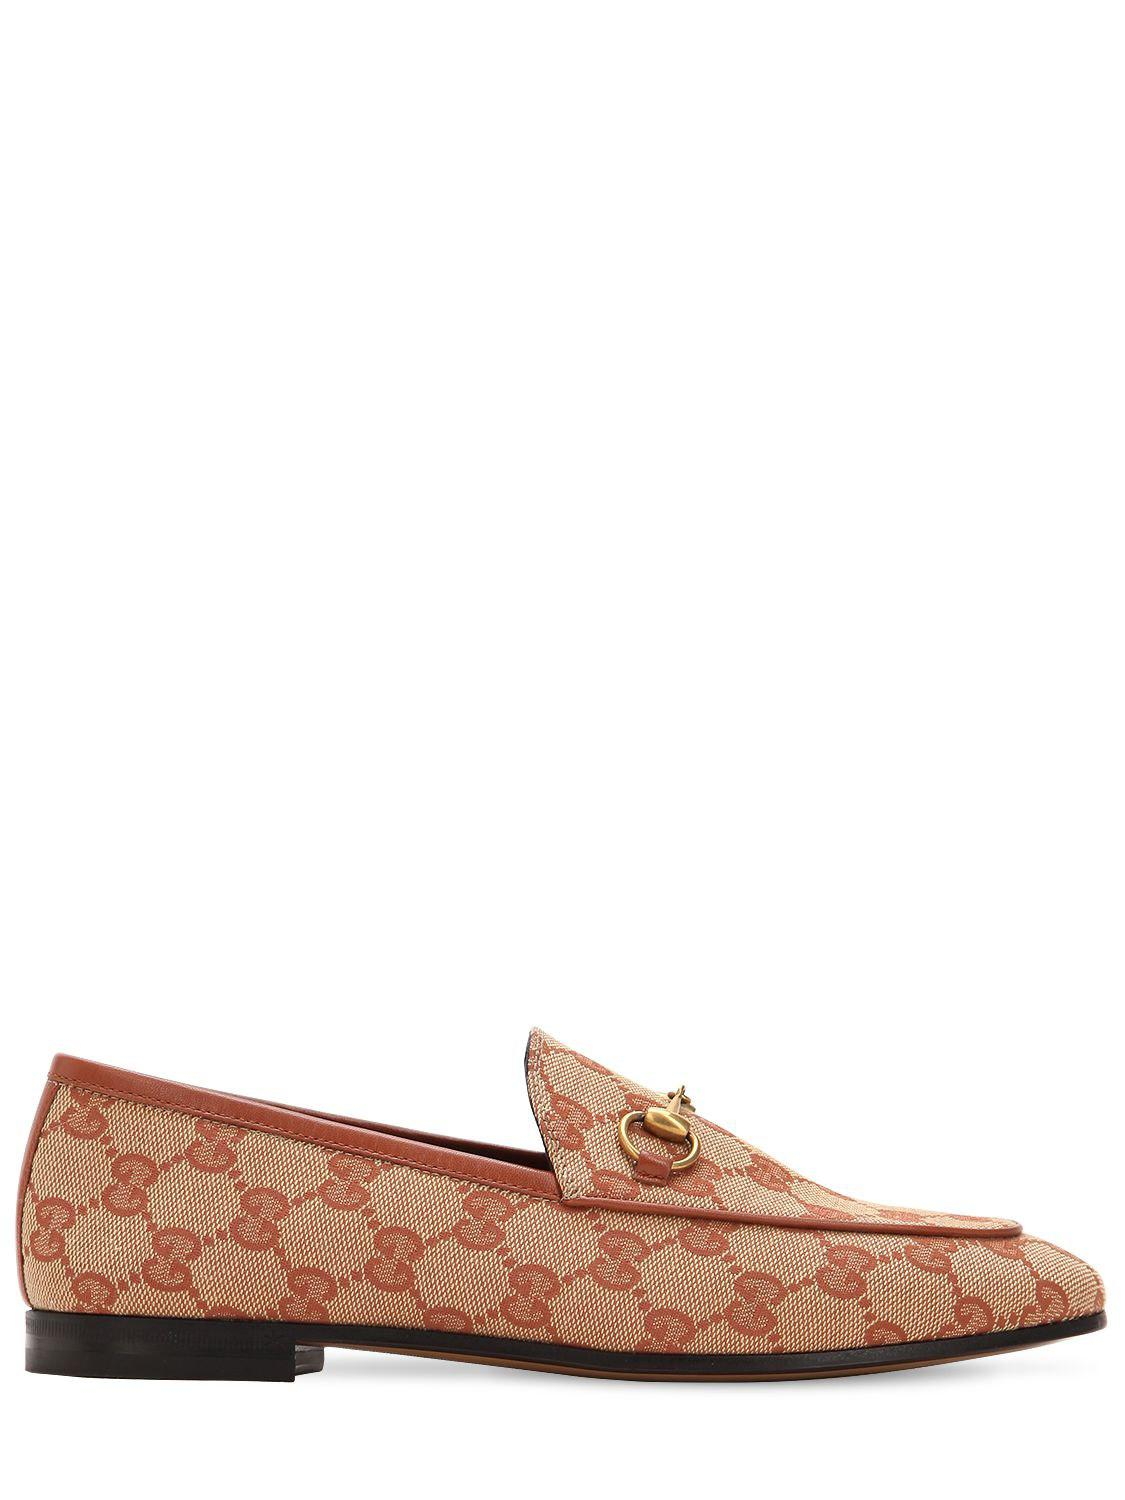 9fac6a26f Gucci Jordaan Loafer in Natural - Save 26% - Lyst